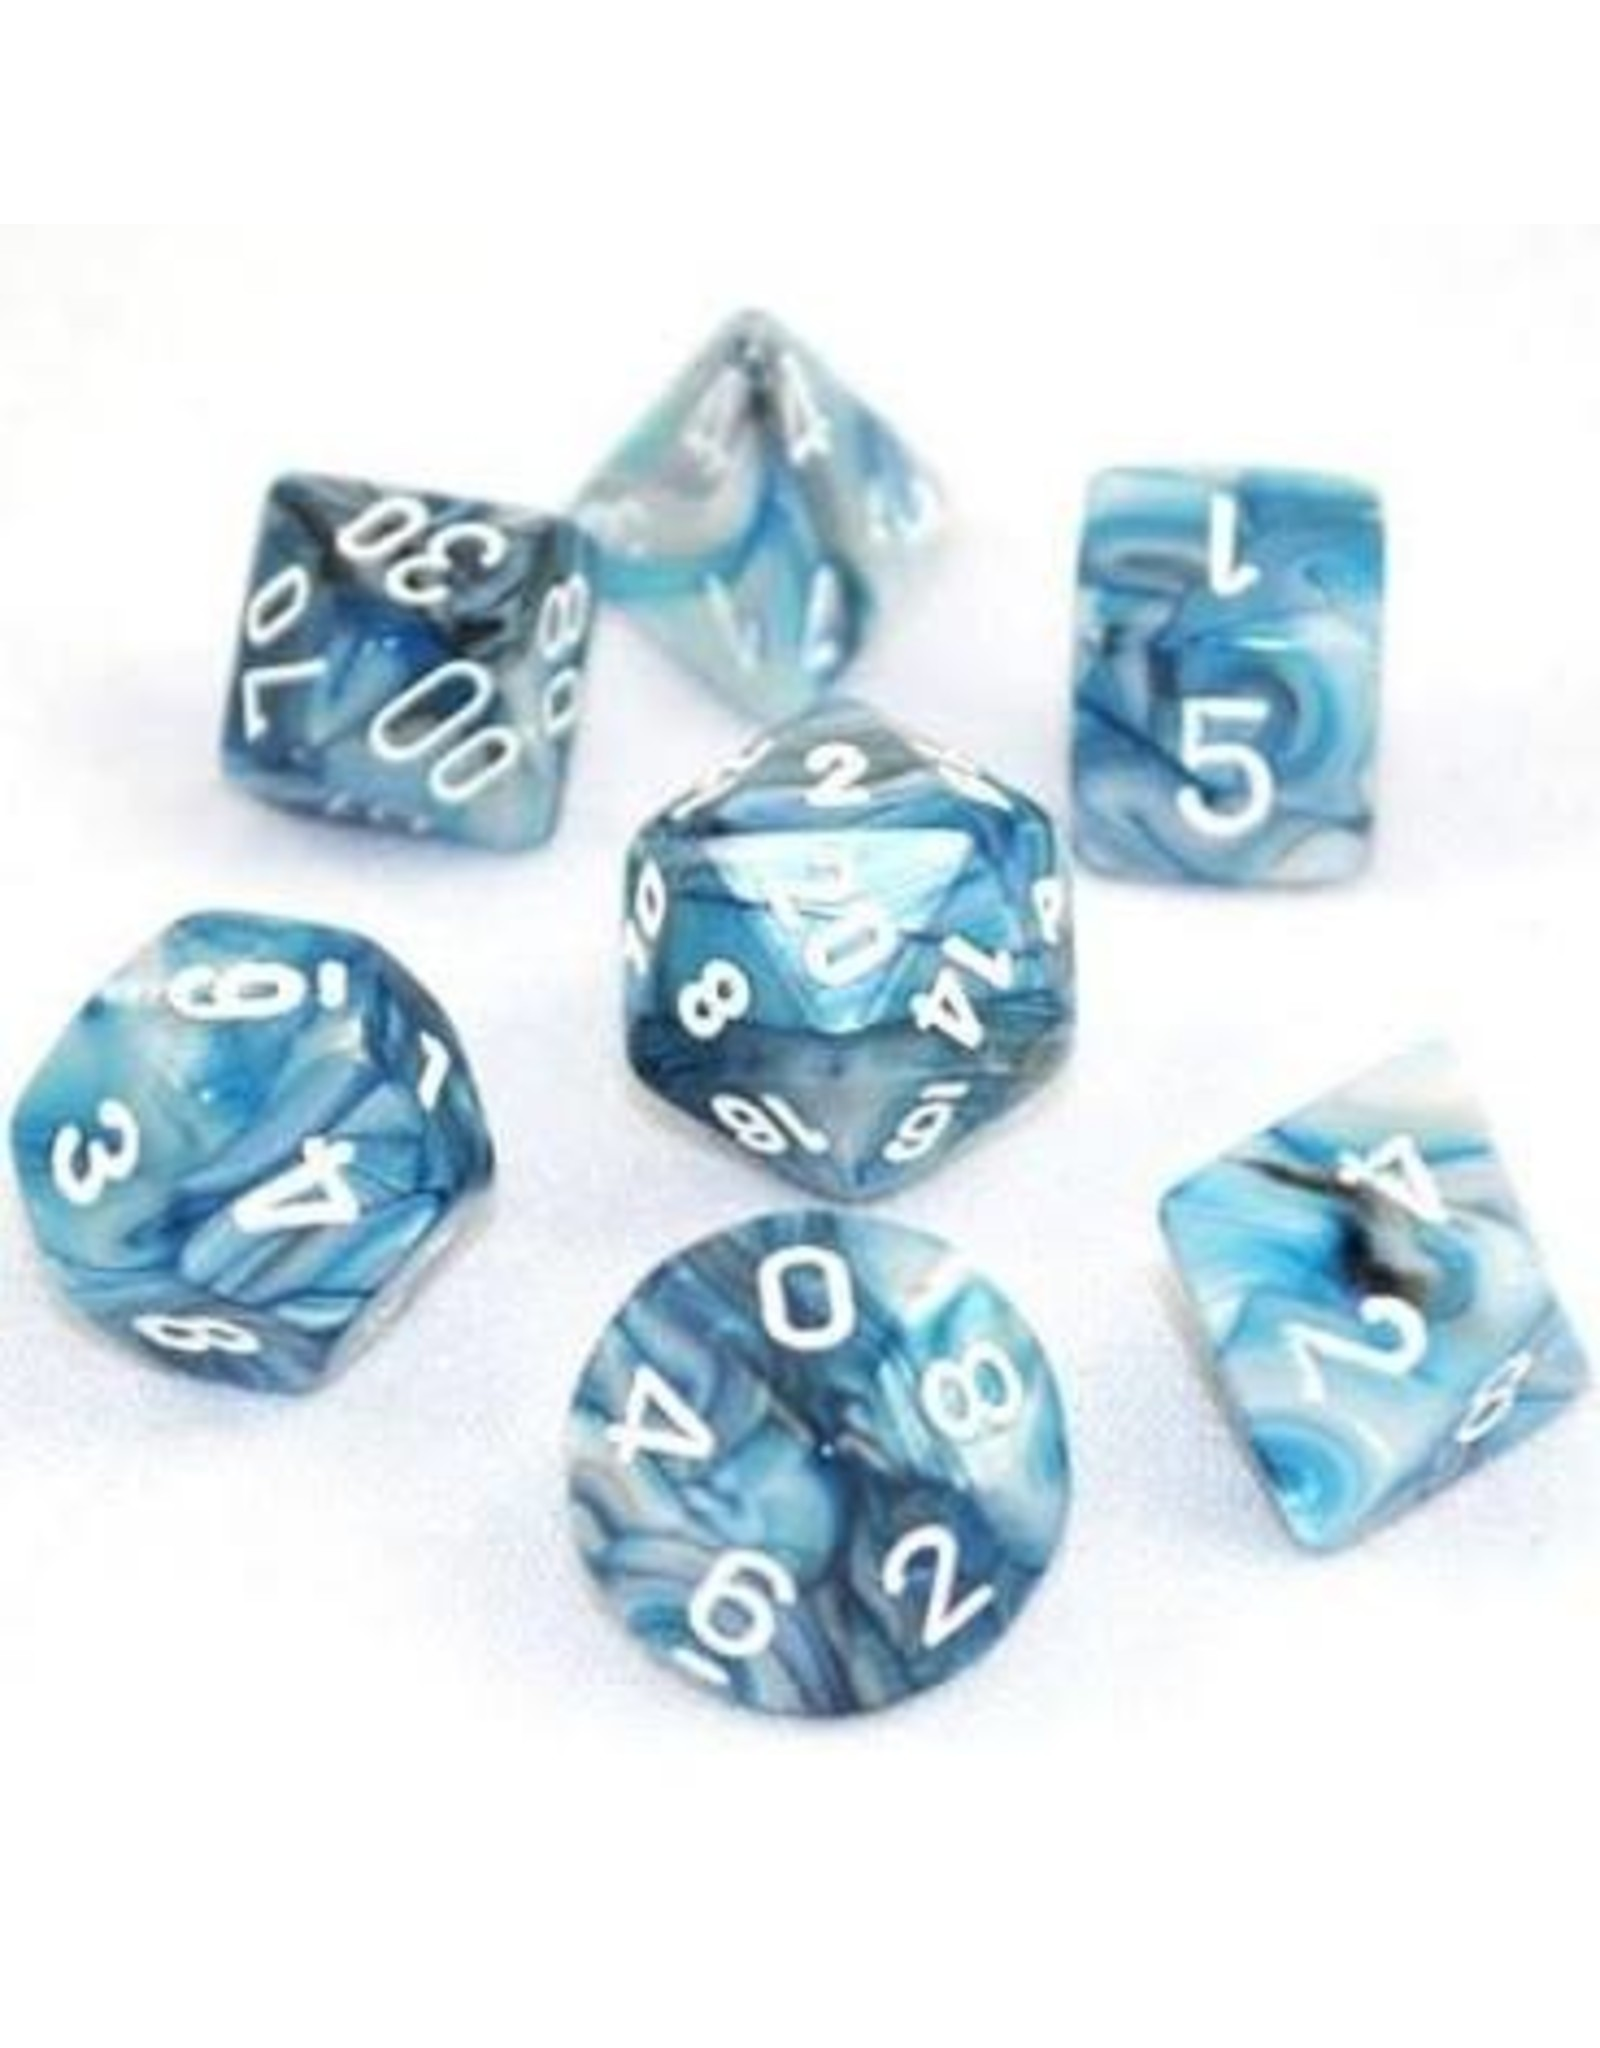 Chessex 7-Set Polyhedral Dm7 Lustrous Slate/white